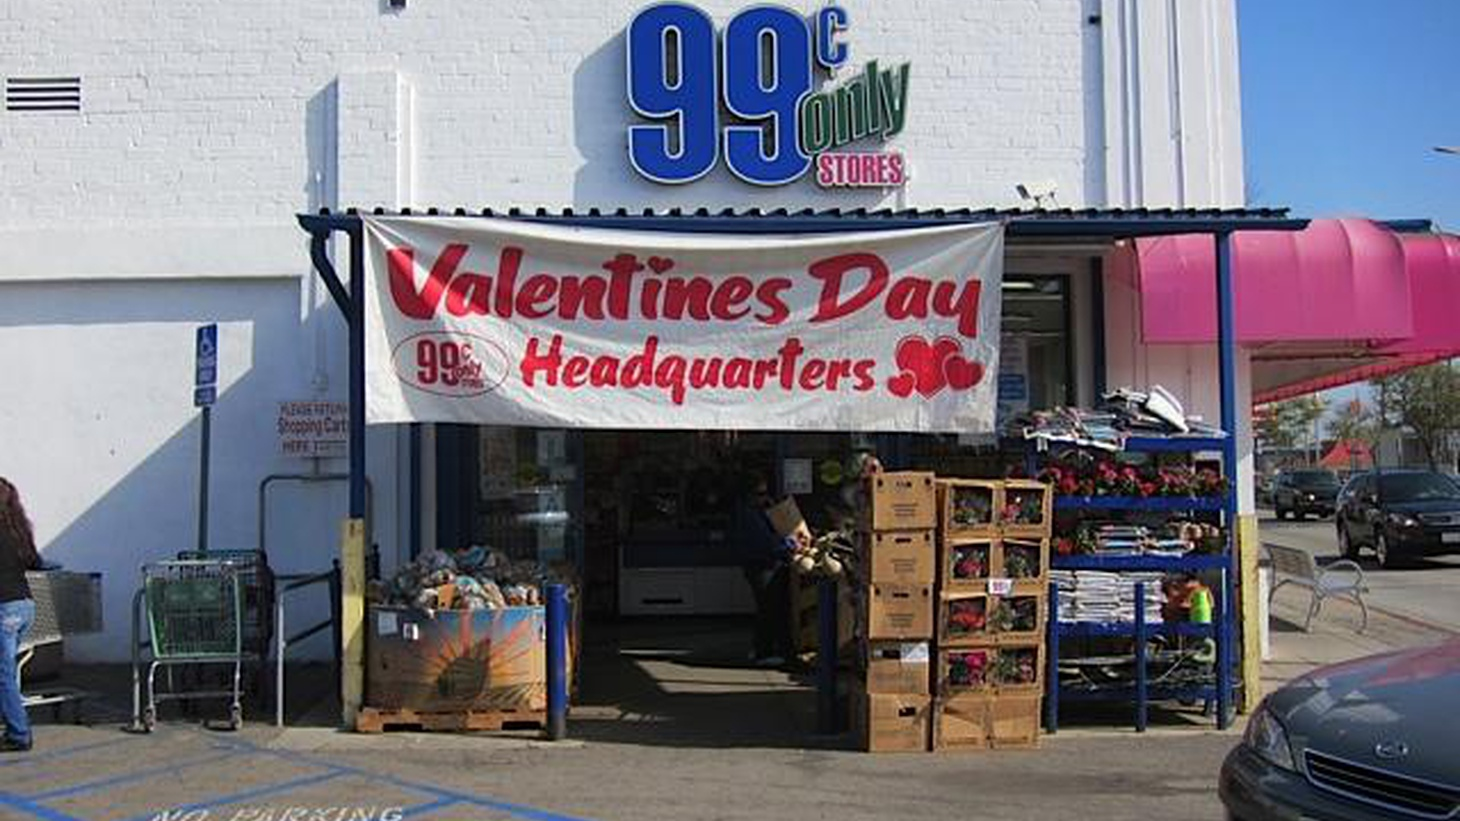 Three food lovers share their ideas for celebrating Valentine's Day. One chooses chocolate roses from the 99¢ Store, another opts for beef heart tartare.